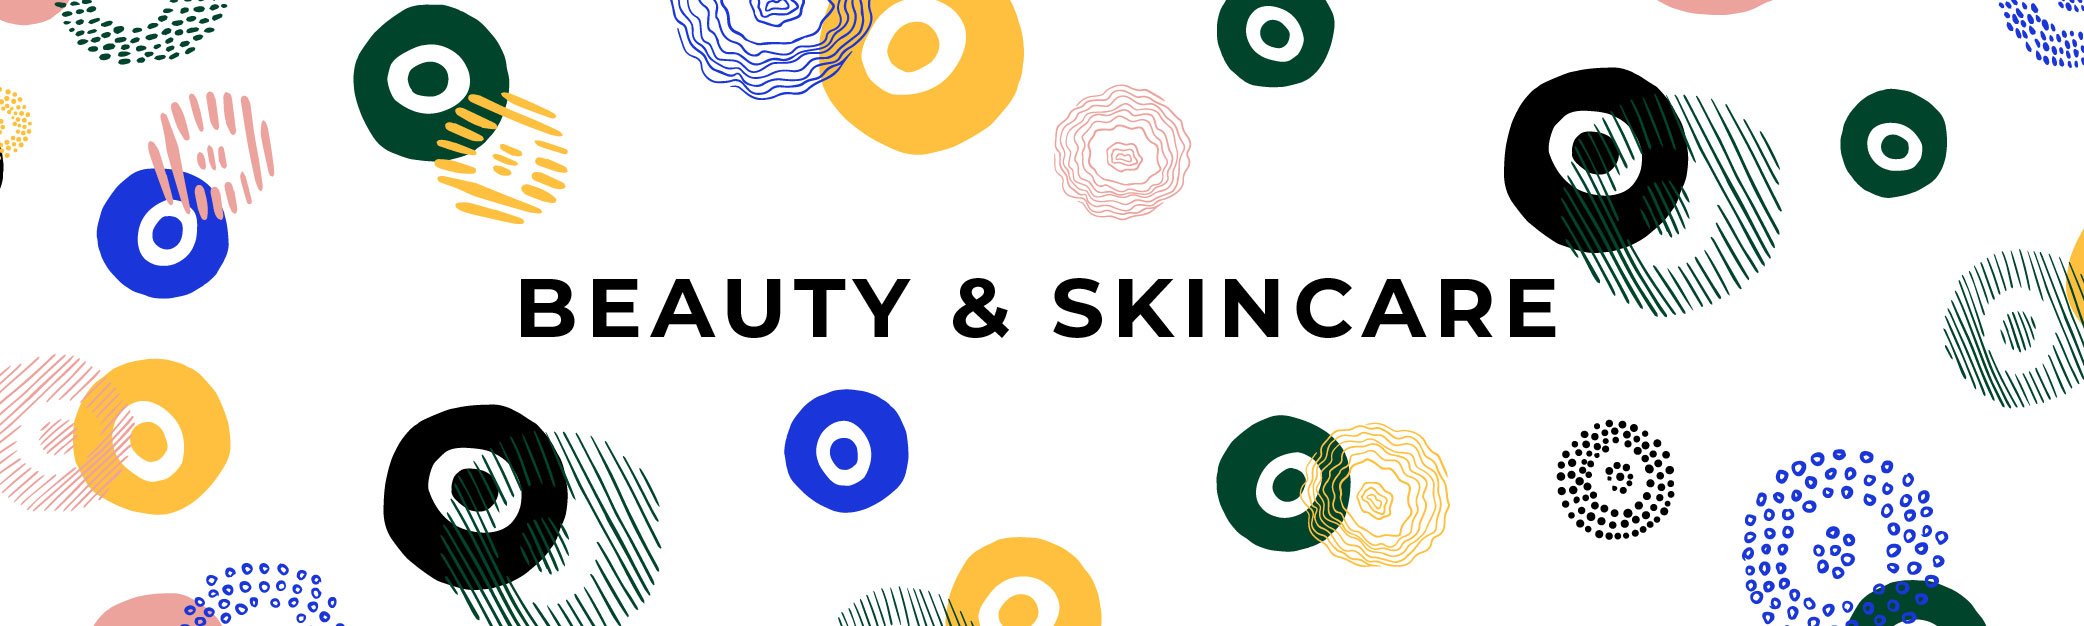 PATTERN_-_CATEGORIES-02